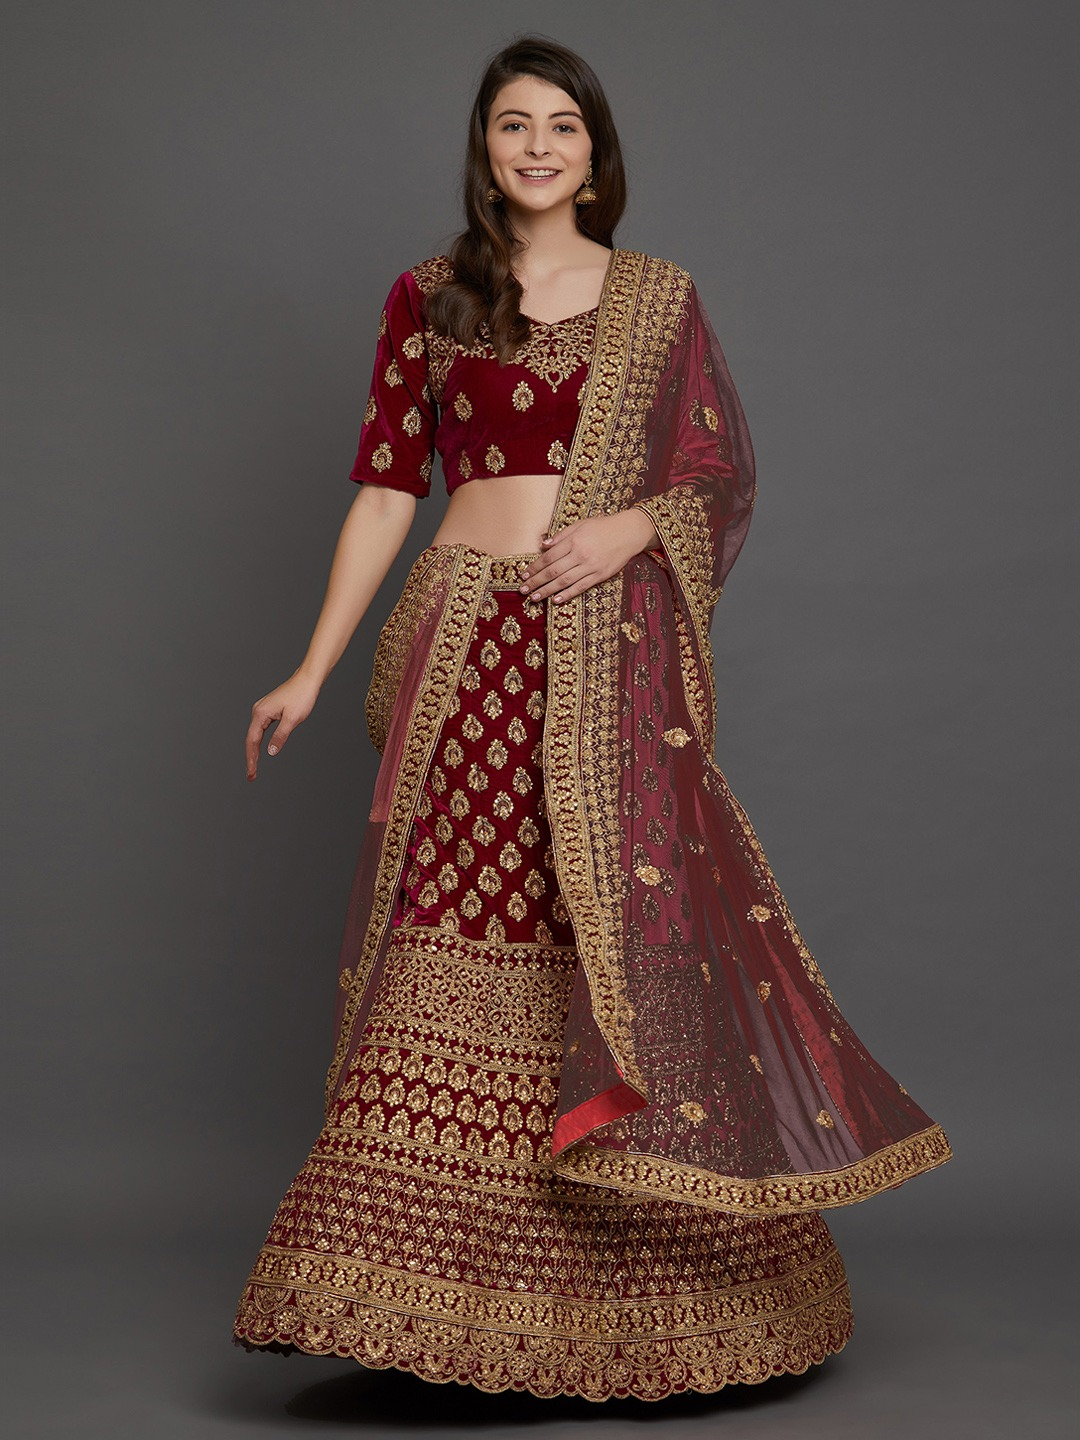 Latest Lehenga Designs For The Brides Of 2020 Wedding Lehenga With Price